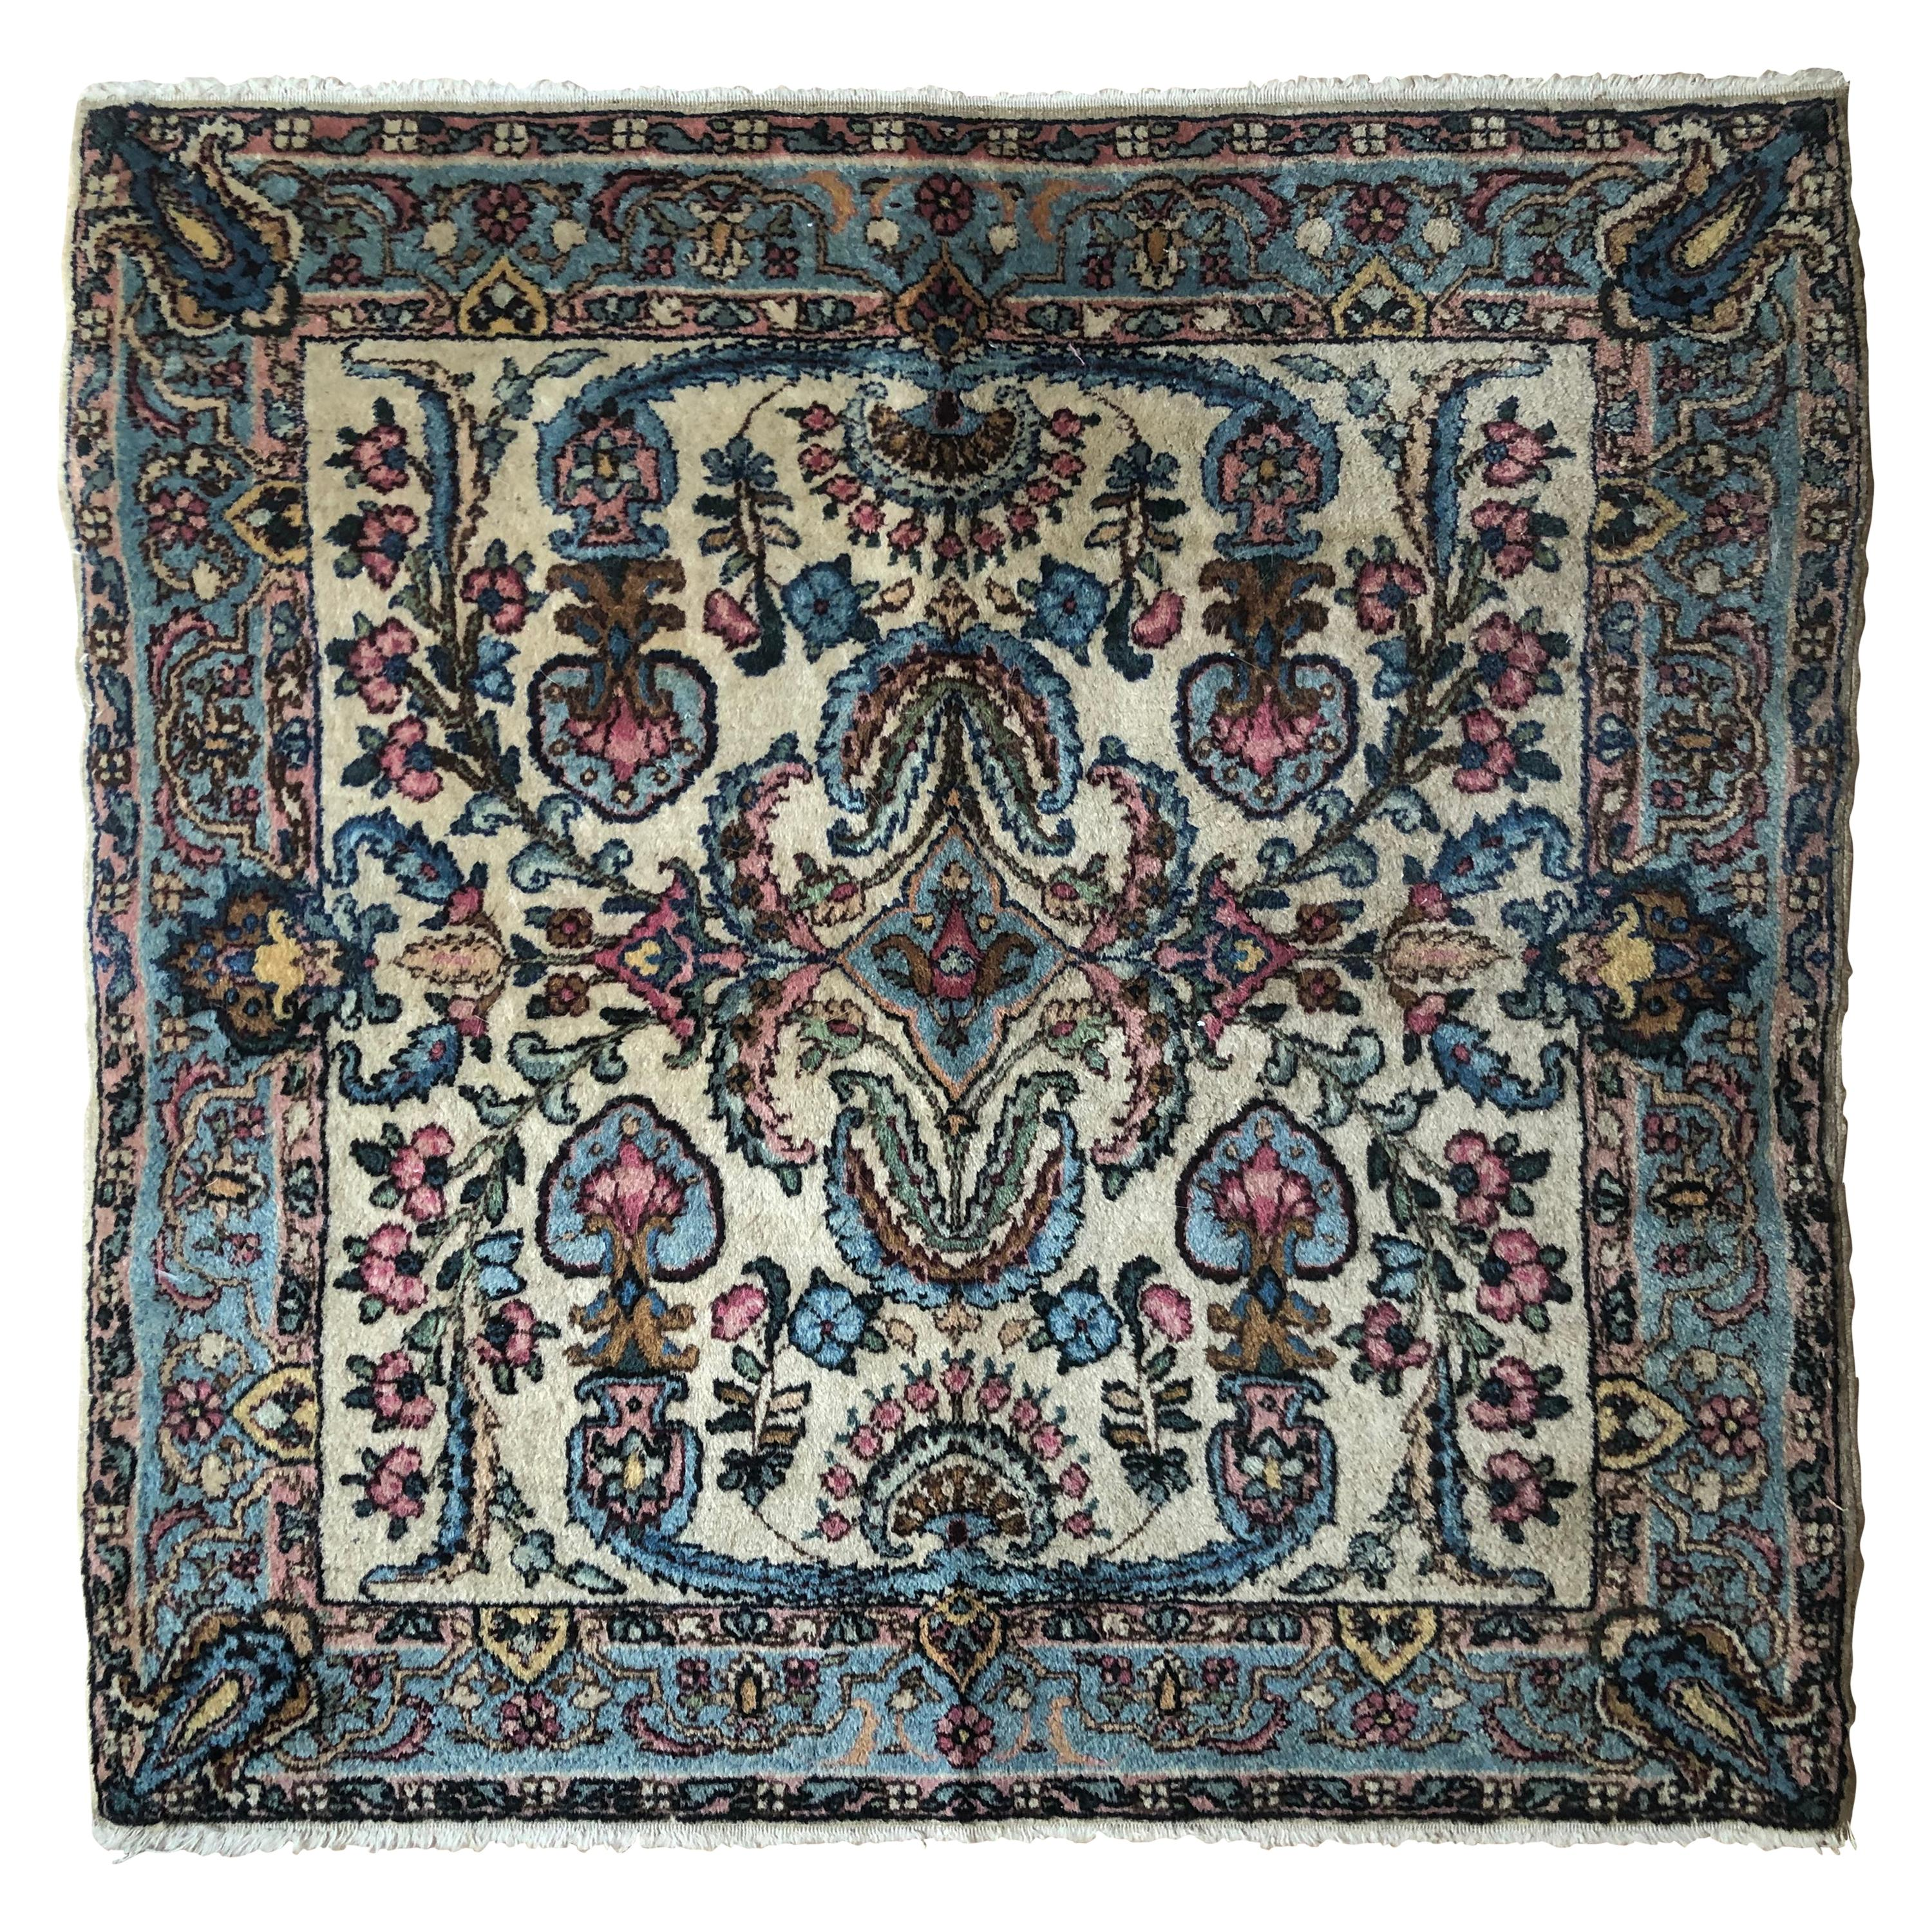 Handwoven Square Fine Wool Persian Rug